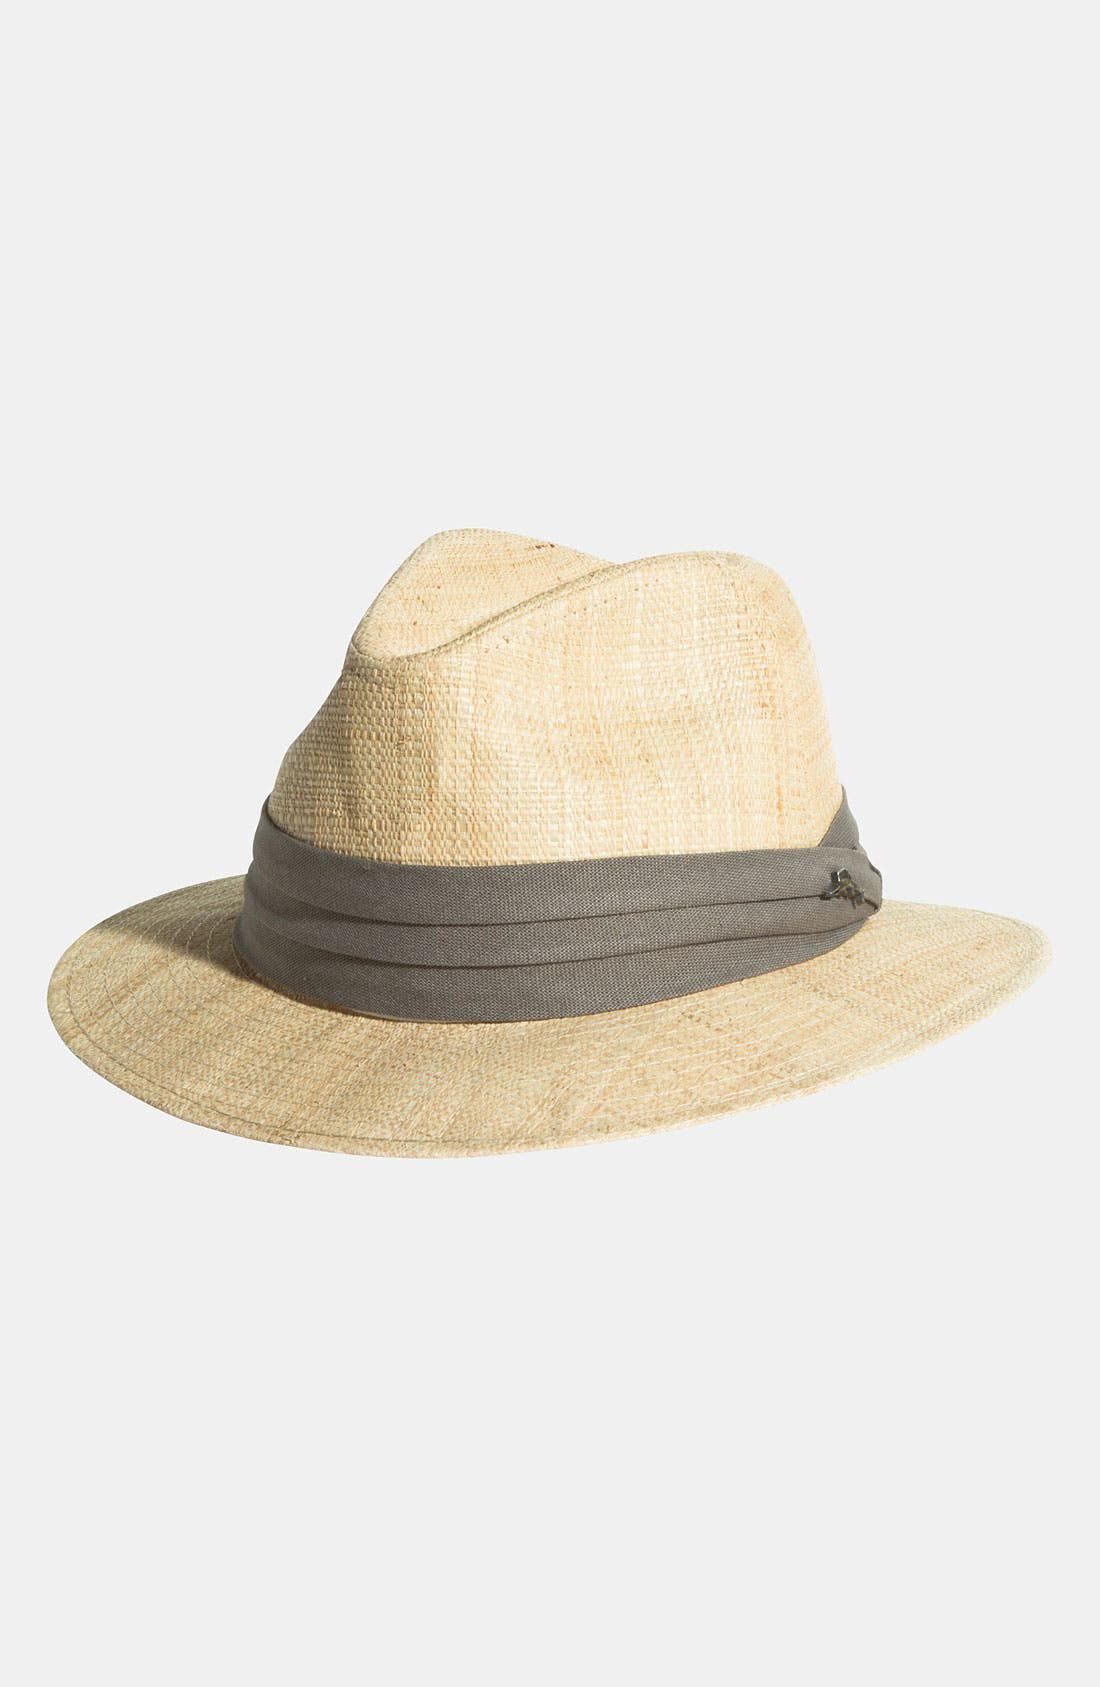 Alternate Image 1 Selected - Tommy Bahama 'Rough Cotton' Raffia Fedora